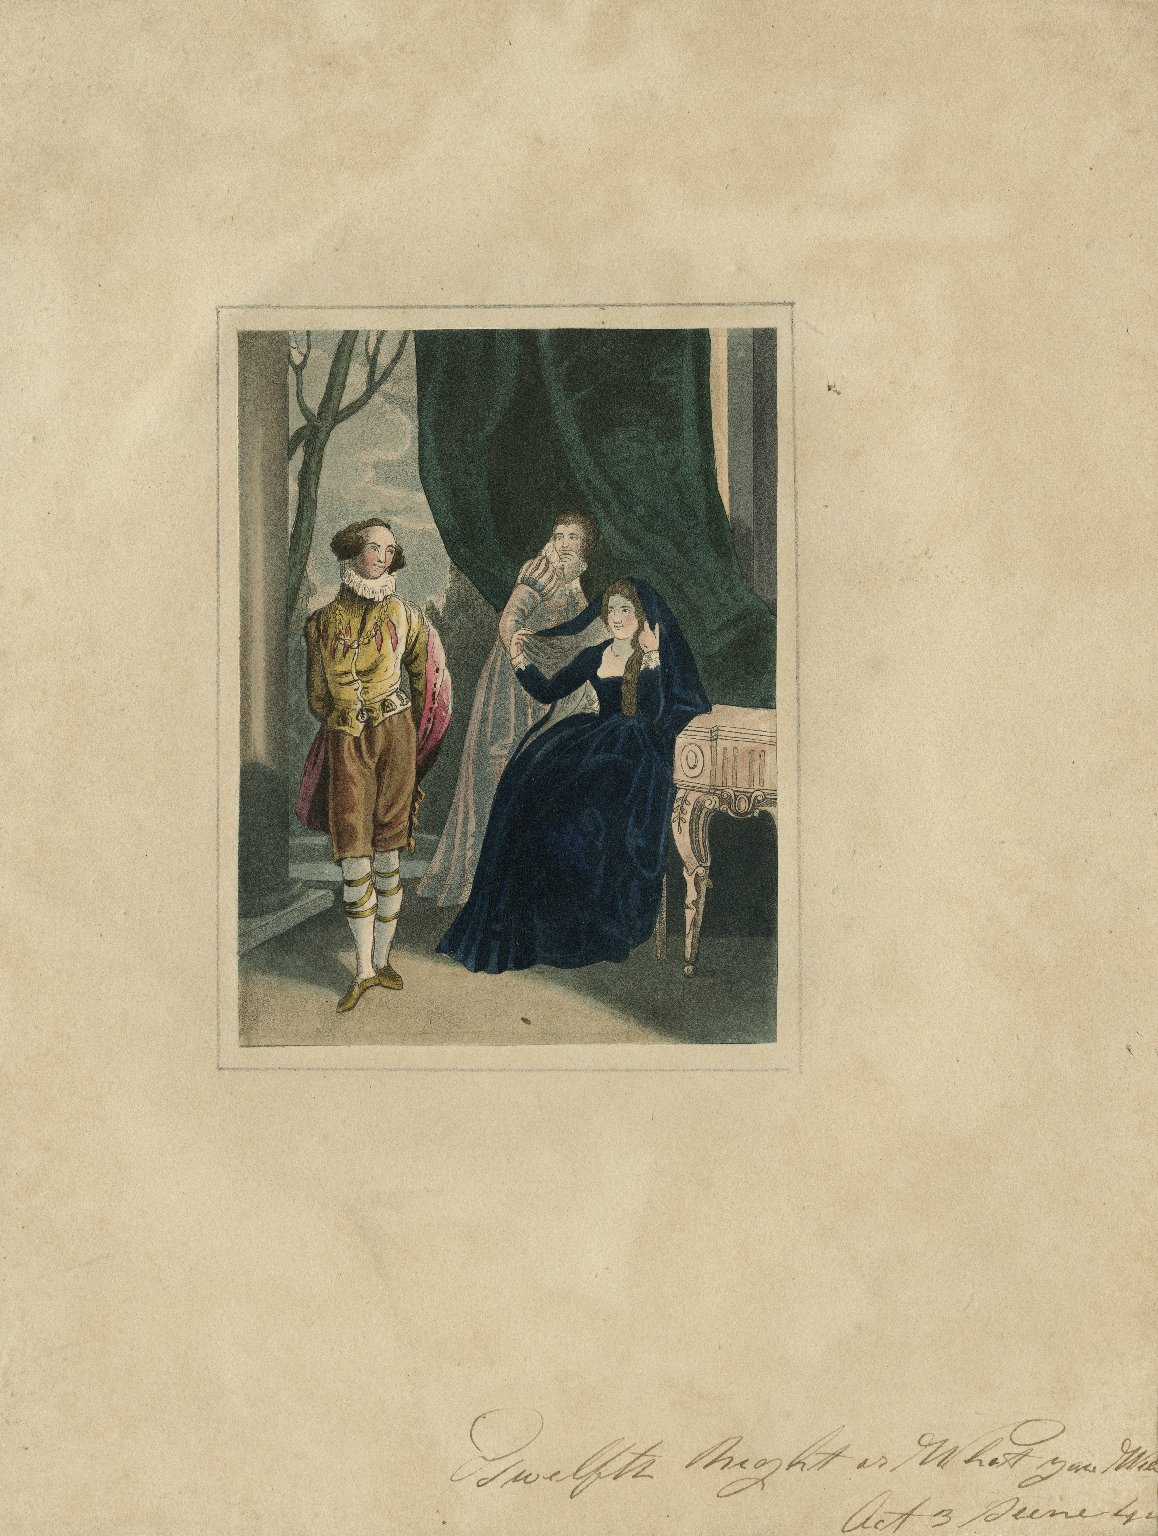 Twelfth night, or What you will, act 3, scene 4 [graphic].